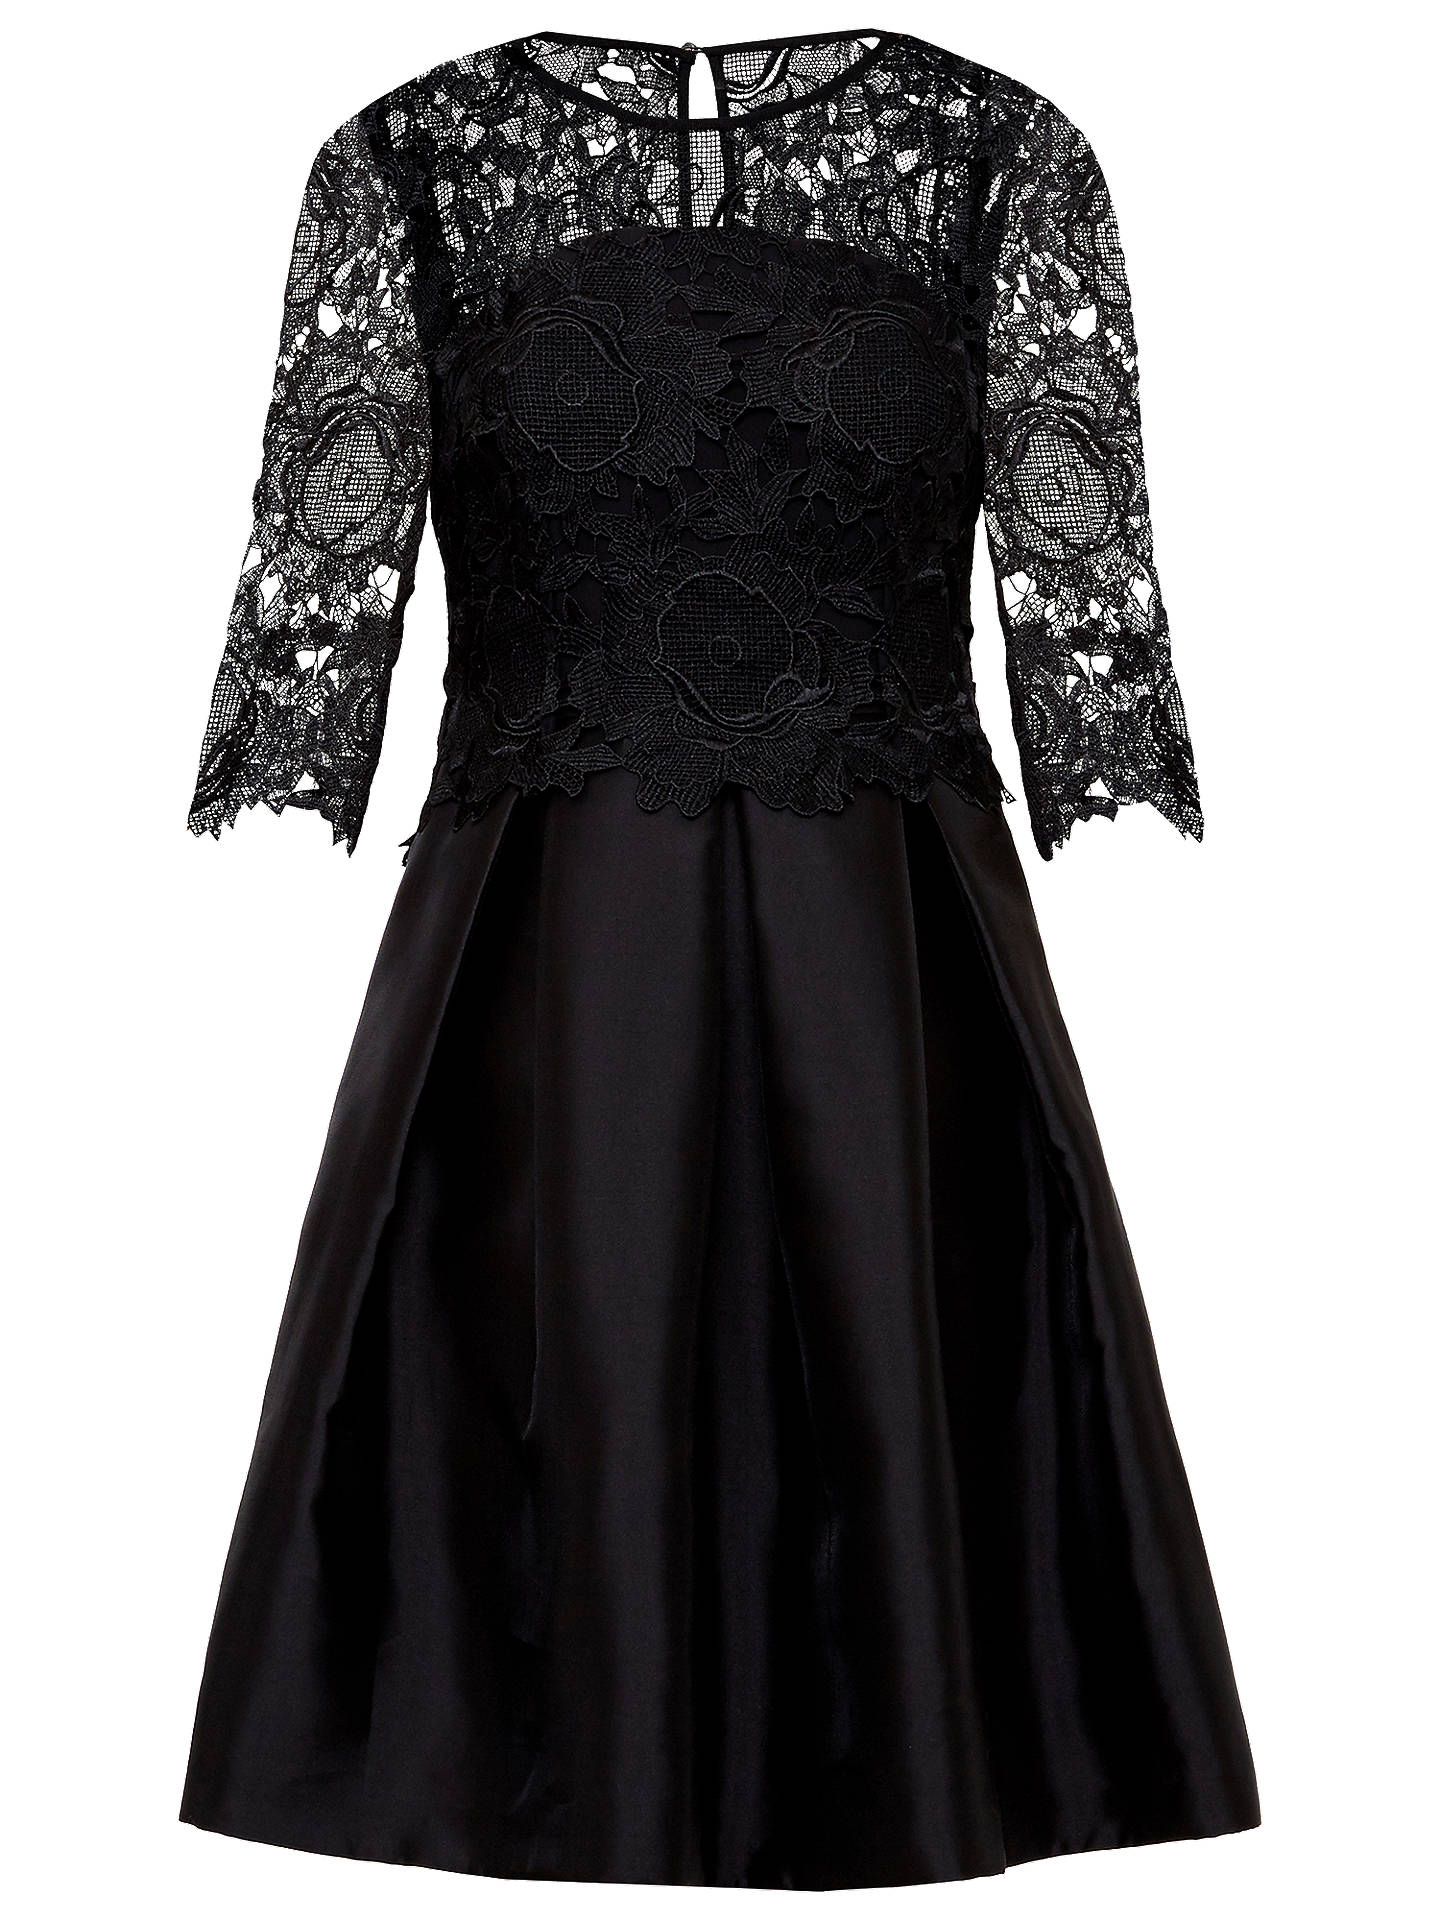 21b83a9f427d Buy Ted Baker Maaria Lace Bodice Dress